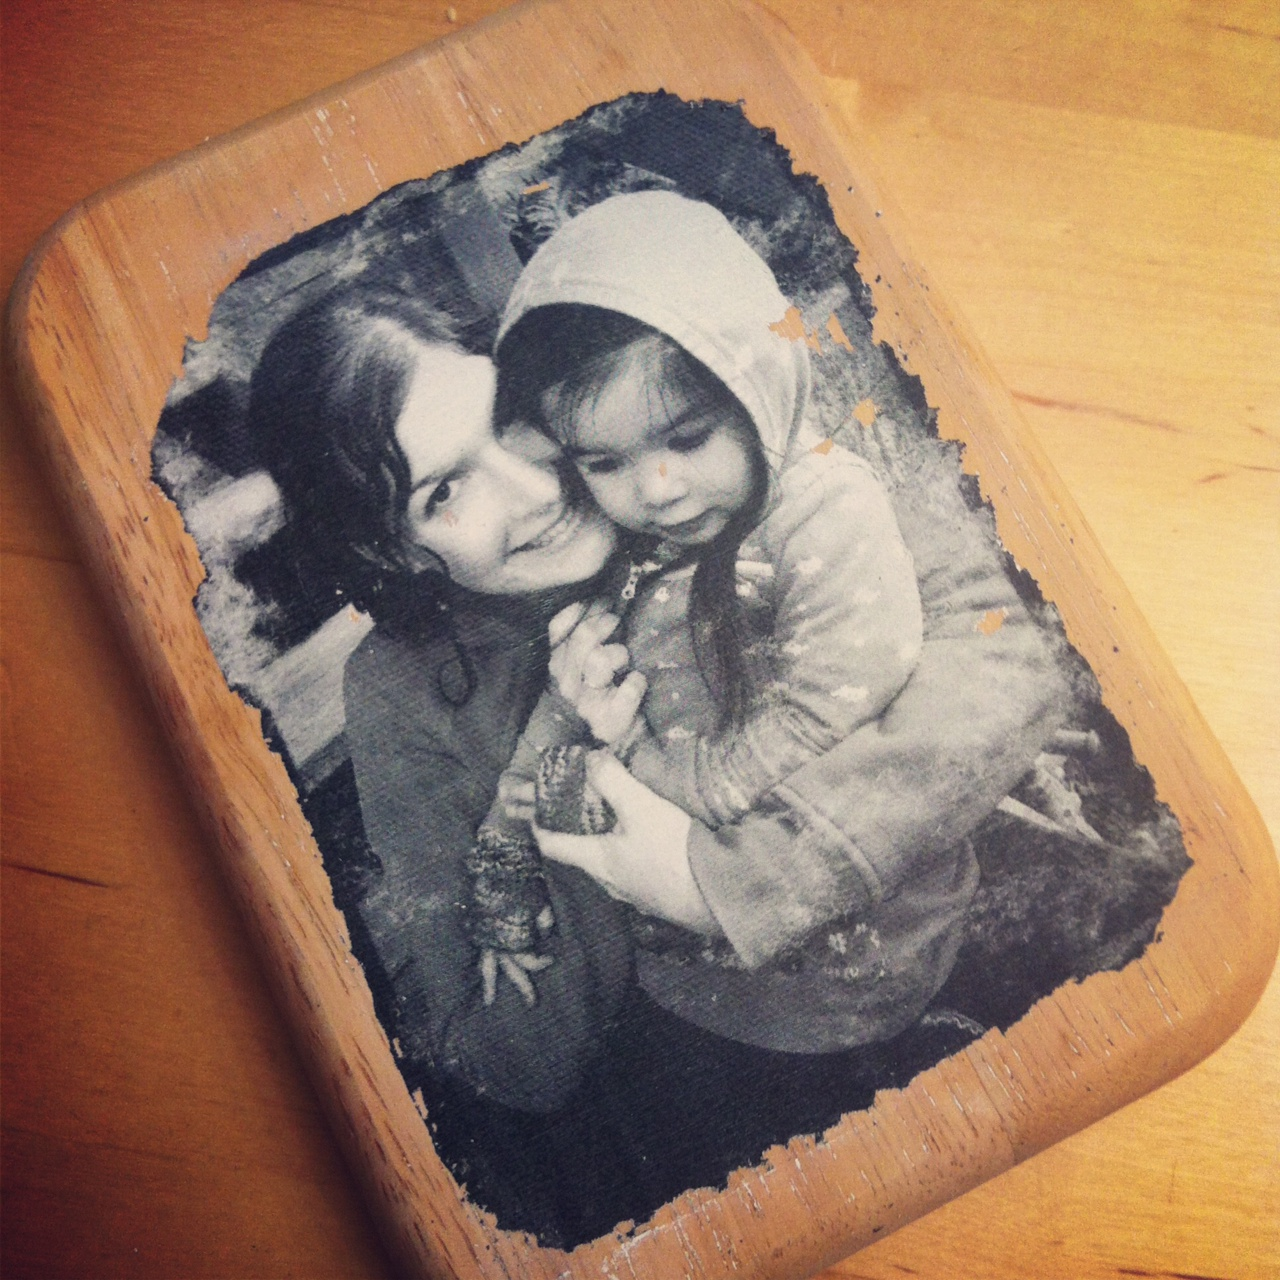 photo to wood transfer tutorial with step by step photos